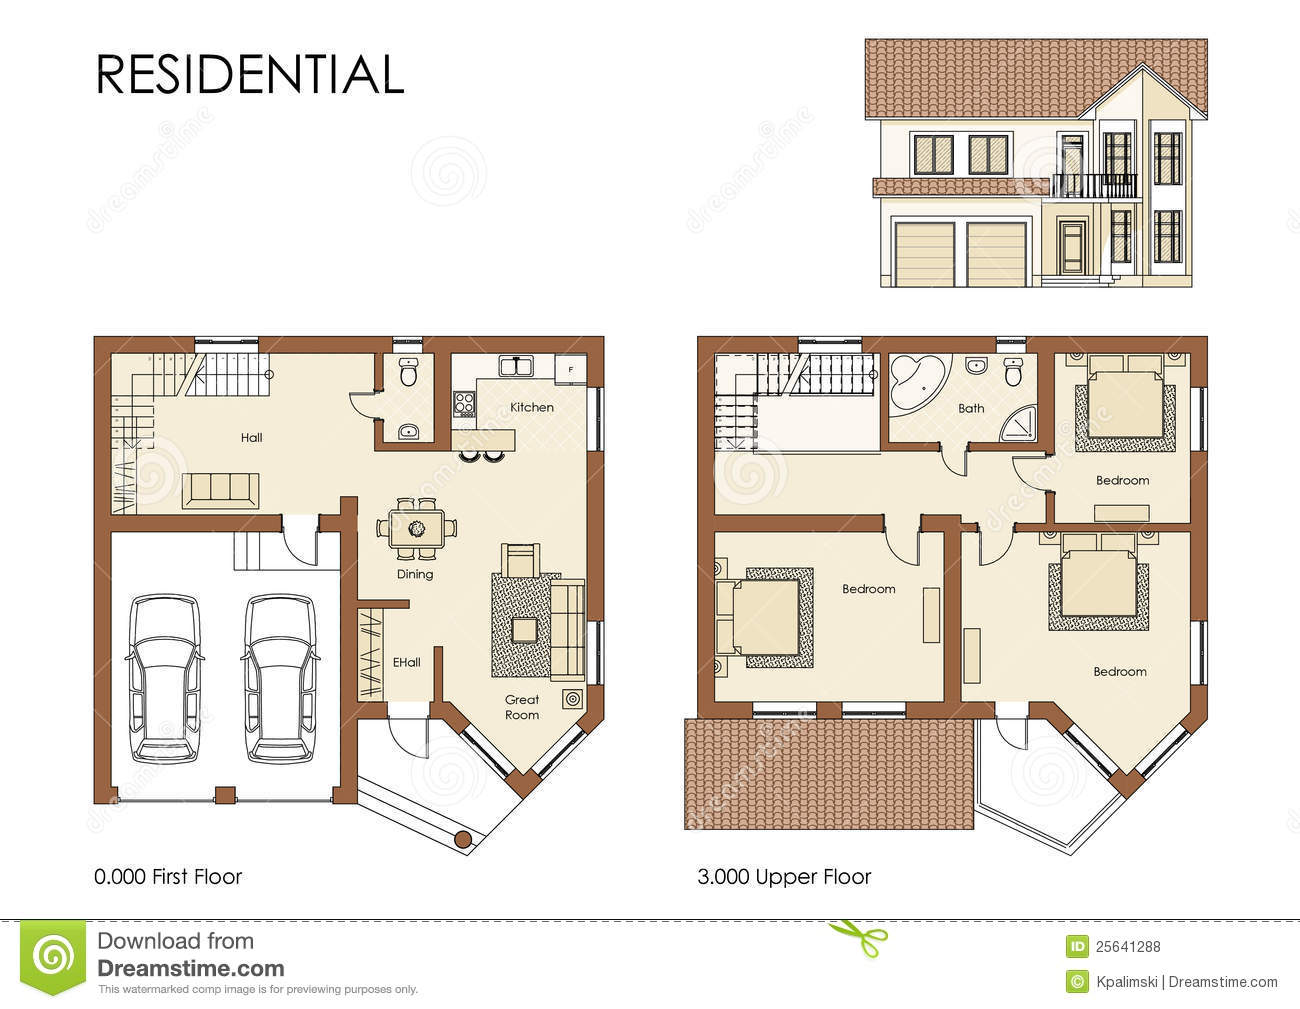 Residential house plan royalty free stock photos image for Residential home plans